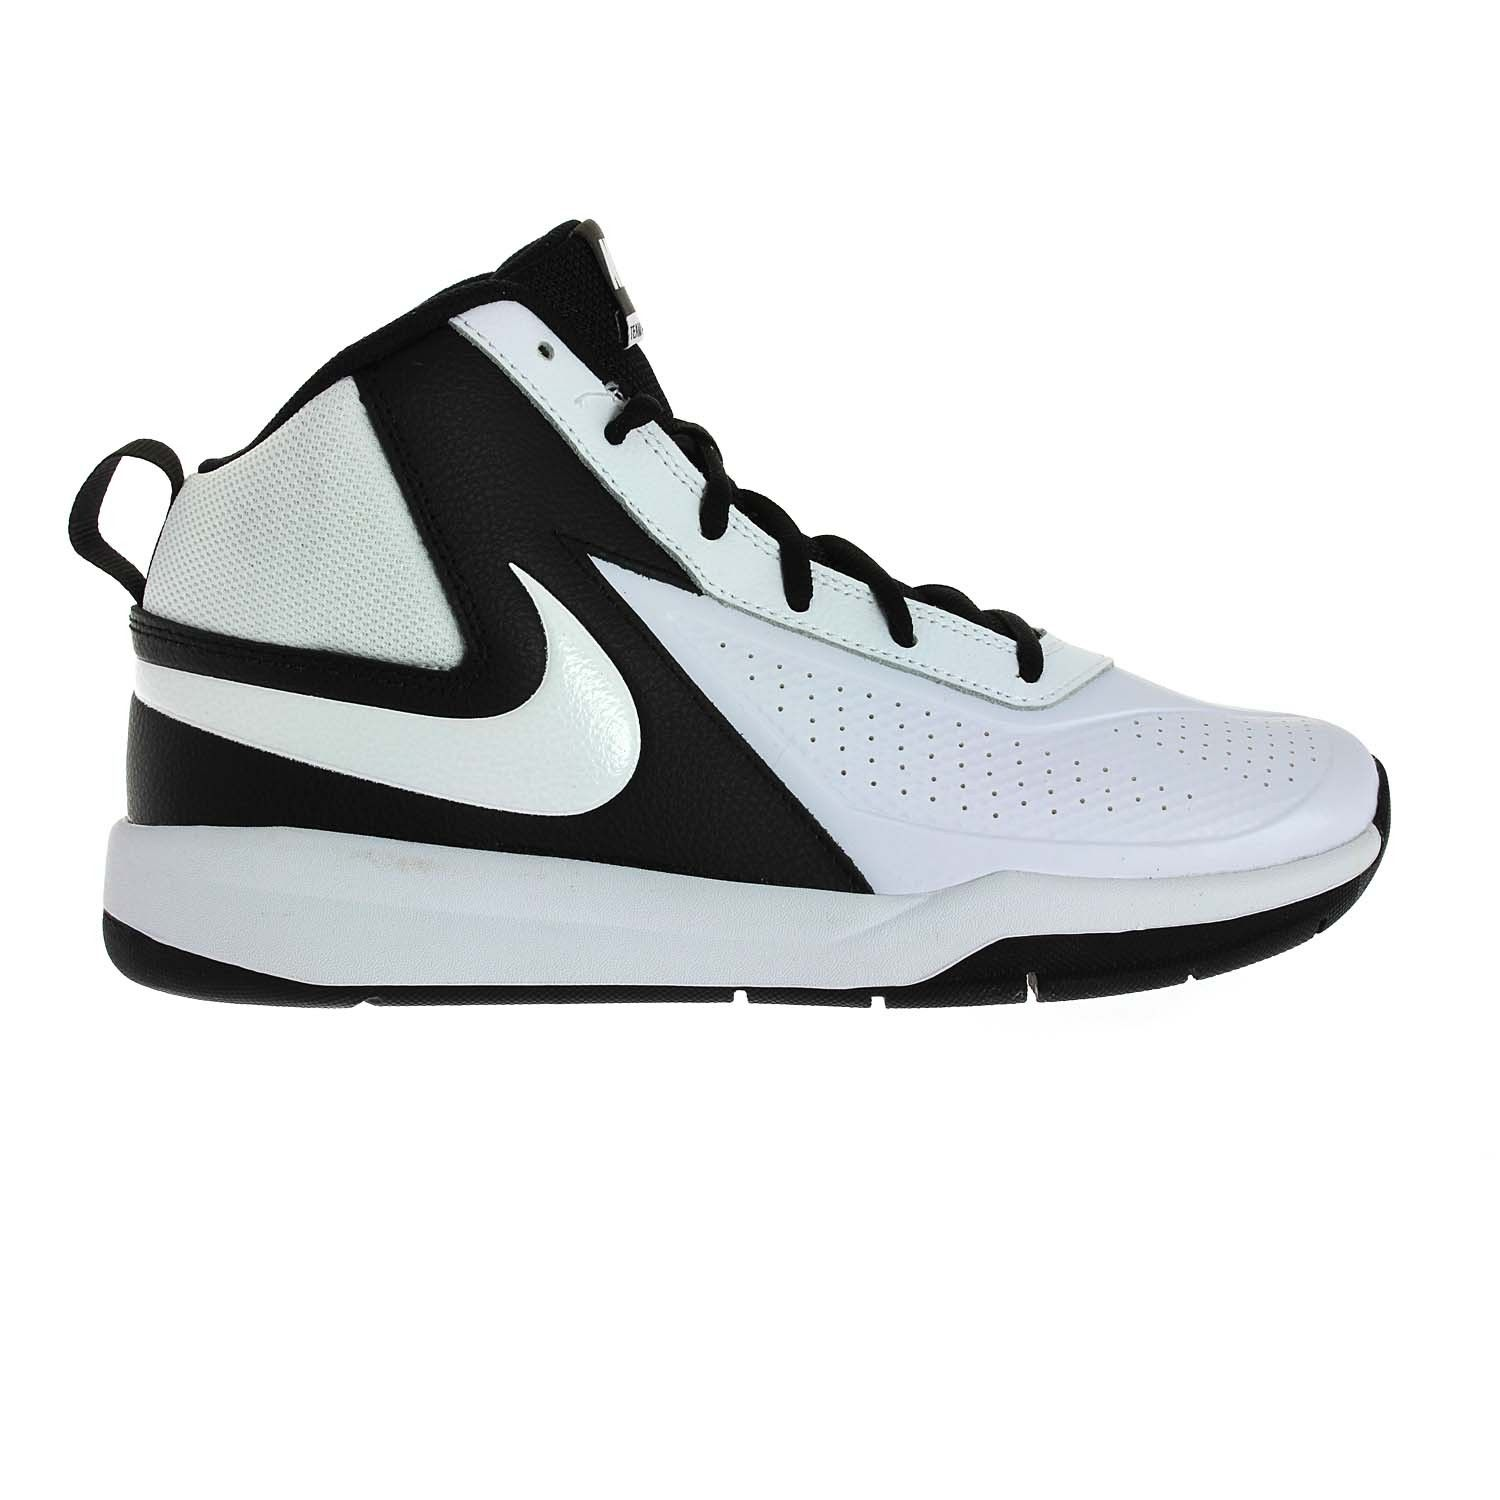 Synthetic and leather upper in a high-top basketball shoe style with a  round toe Lace up front Smooth lining, cushioni